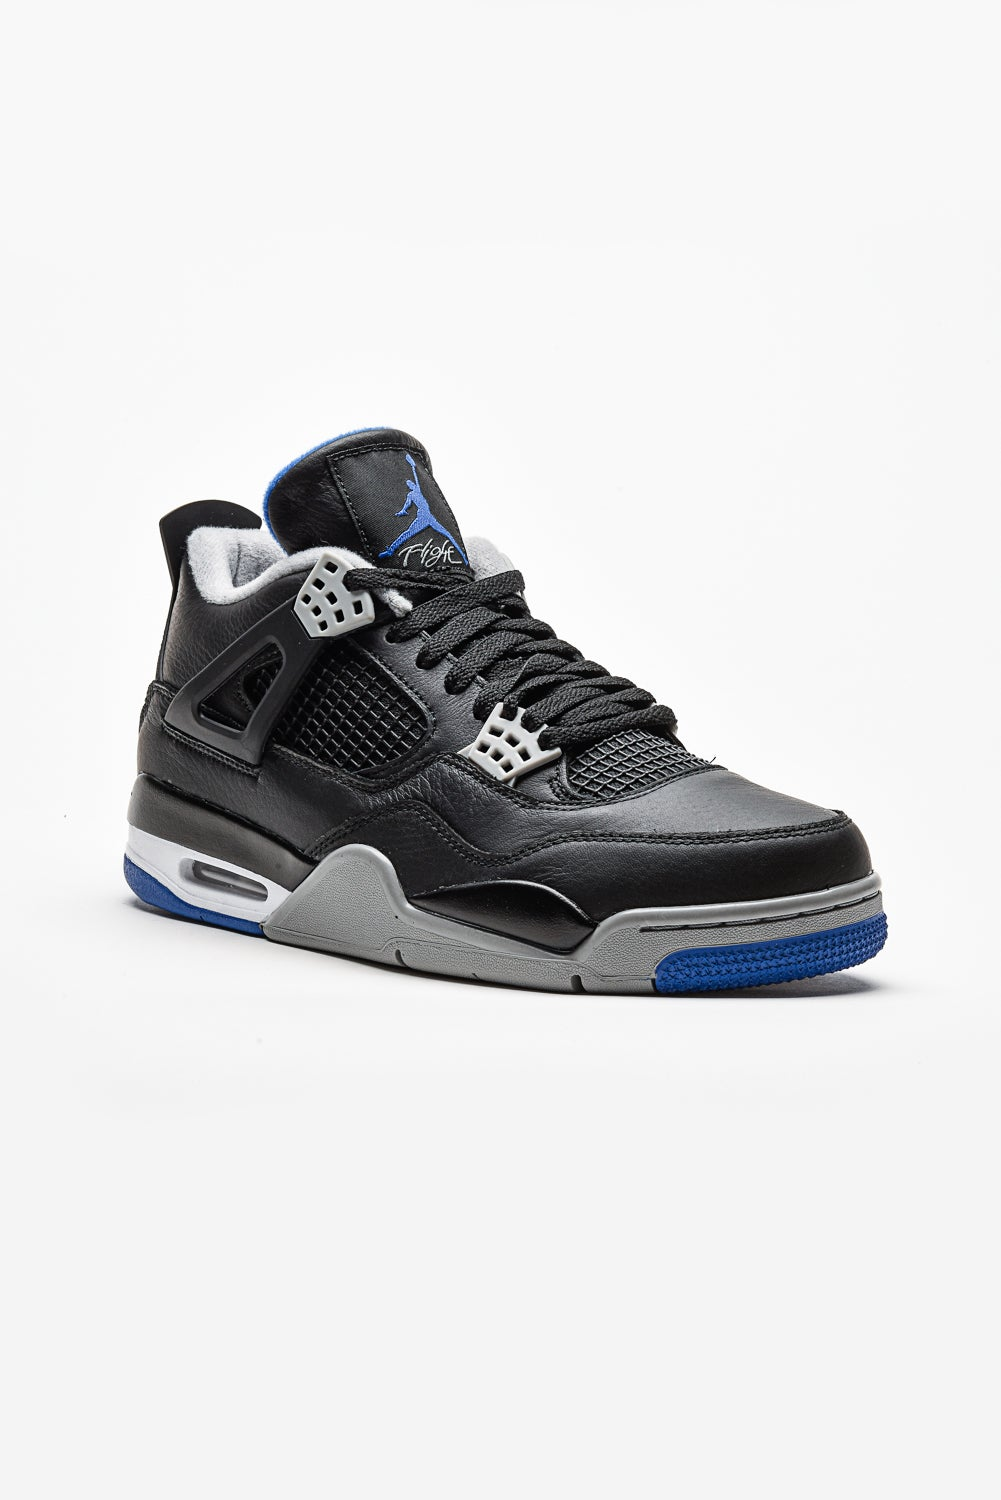 bba5cd89390e Image of Air Jordan 4 Retro - Motorsport Away. STYLE  308497-006. COLORWAY   BLACK GAME ROYAL-MATTE ...